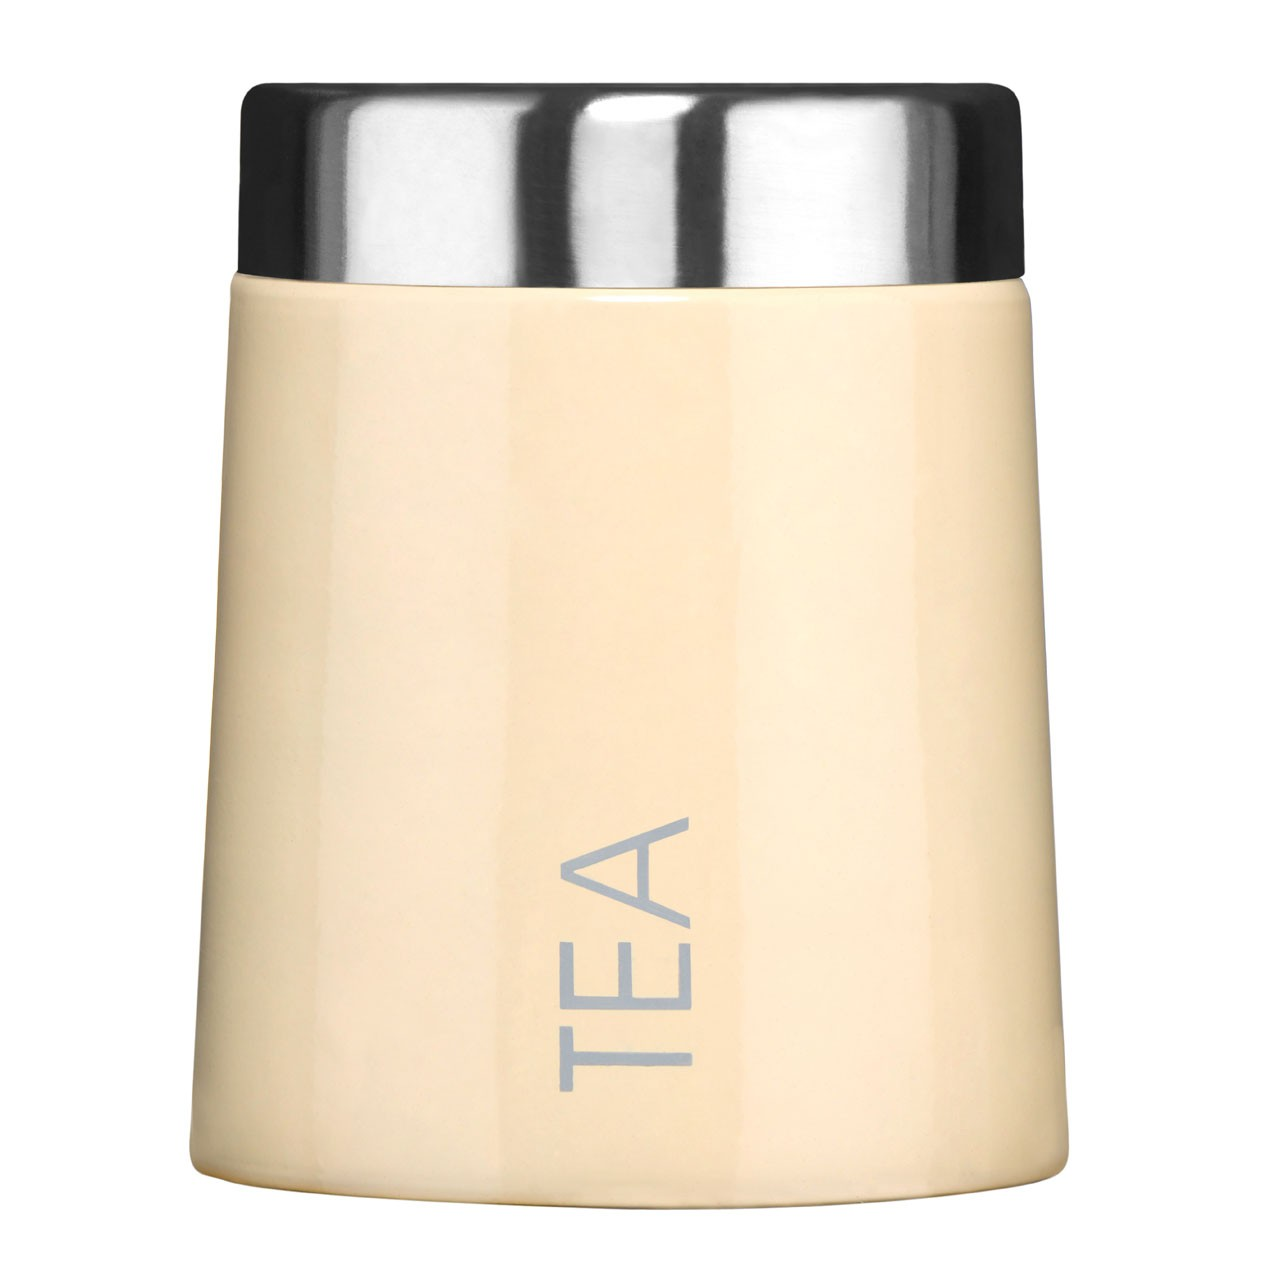 Premier Housewares Conical Tea Canister - Cream